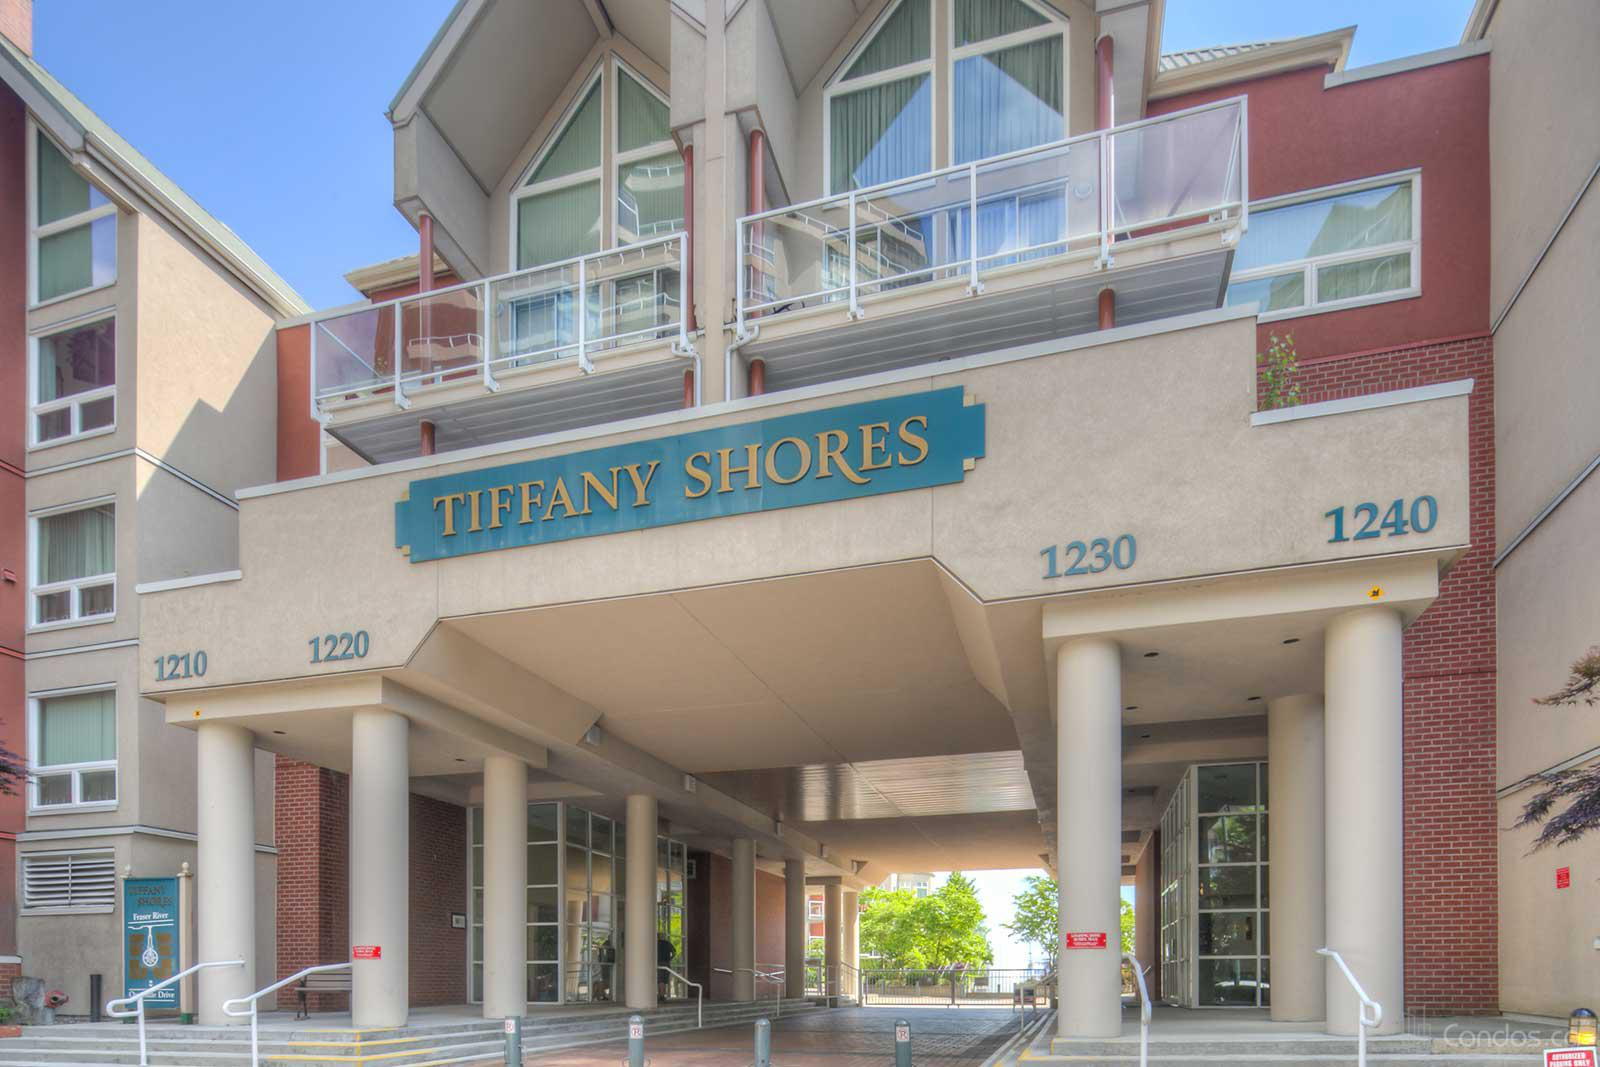 Tiffany Shores at 1230 Quayside Dr, New Westminster 1